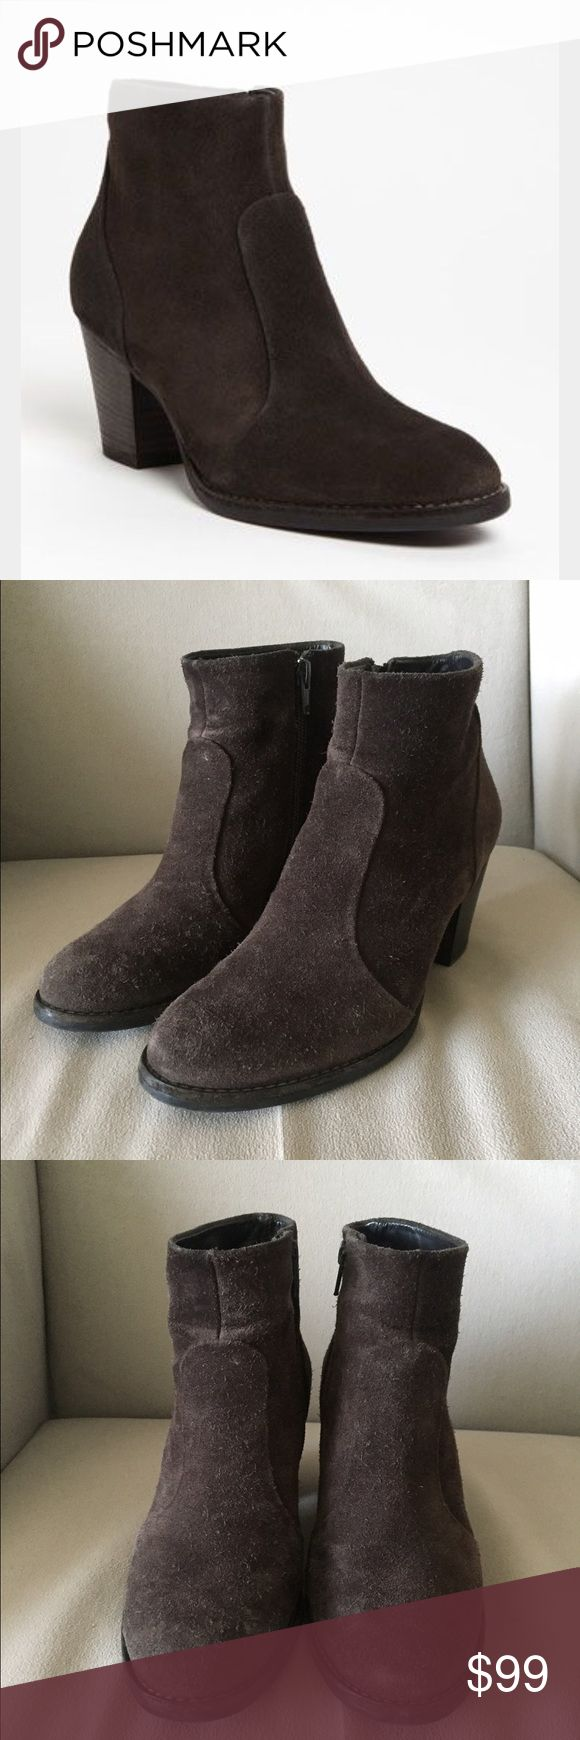 Paul Green Riley Brown Suede Boots US 6 AU 3.5 Paul Green Riley Brown Suede Boots US 6 AU 3.5 $380. Worn twice. Some wear on the right heel Paul Green Shoes Ankle Boots & Booties